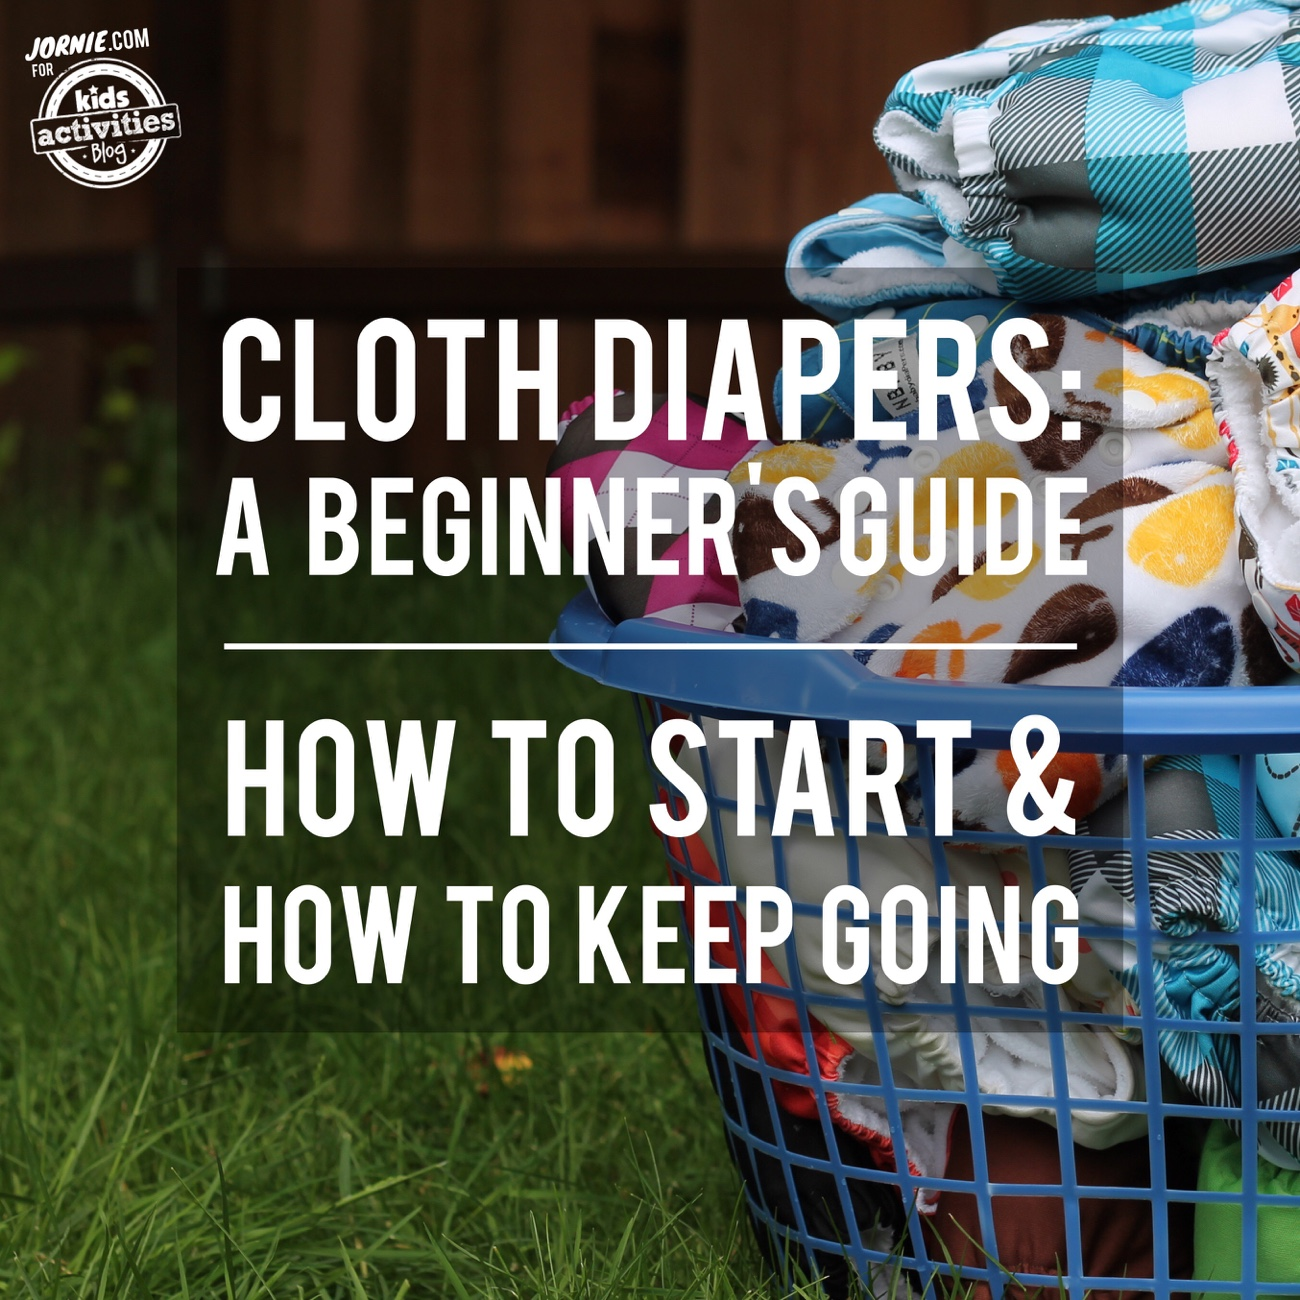 Cloth Diapers: A Beginner's Guide - How to Start & How to Keep Going